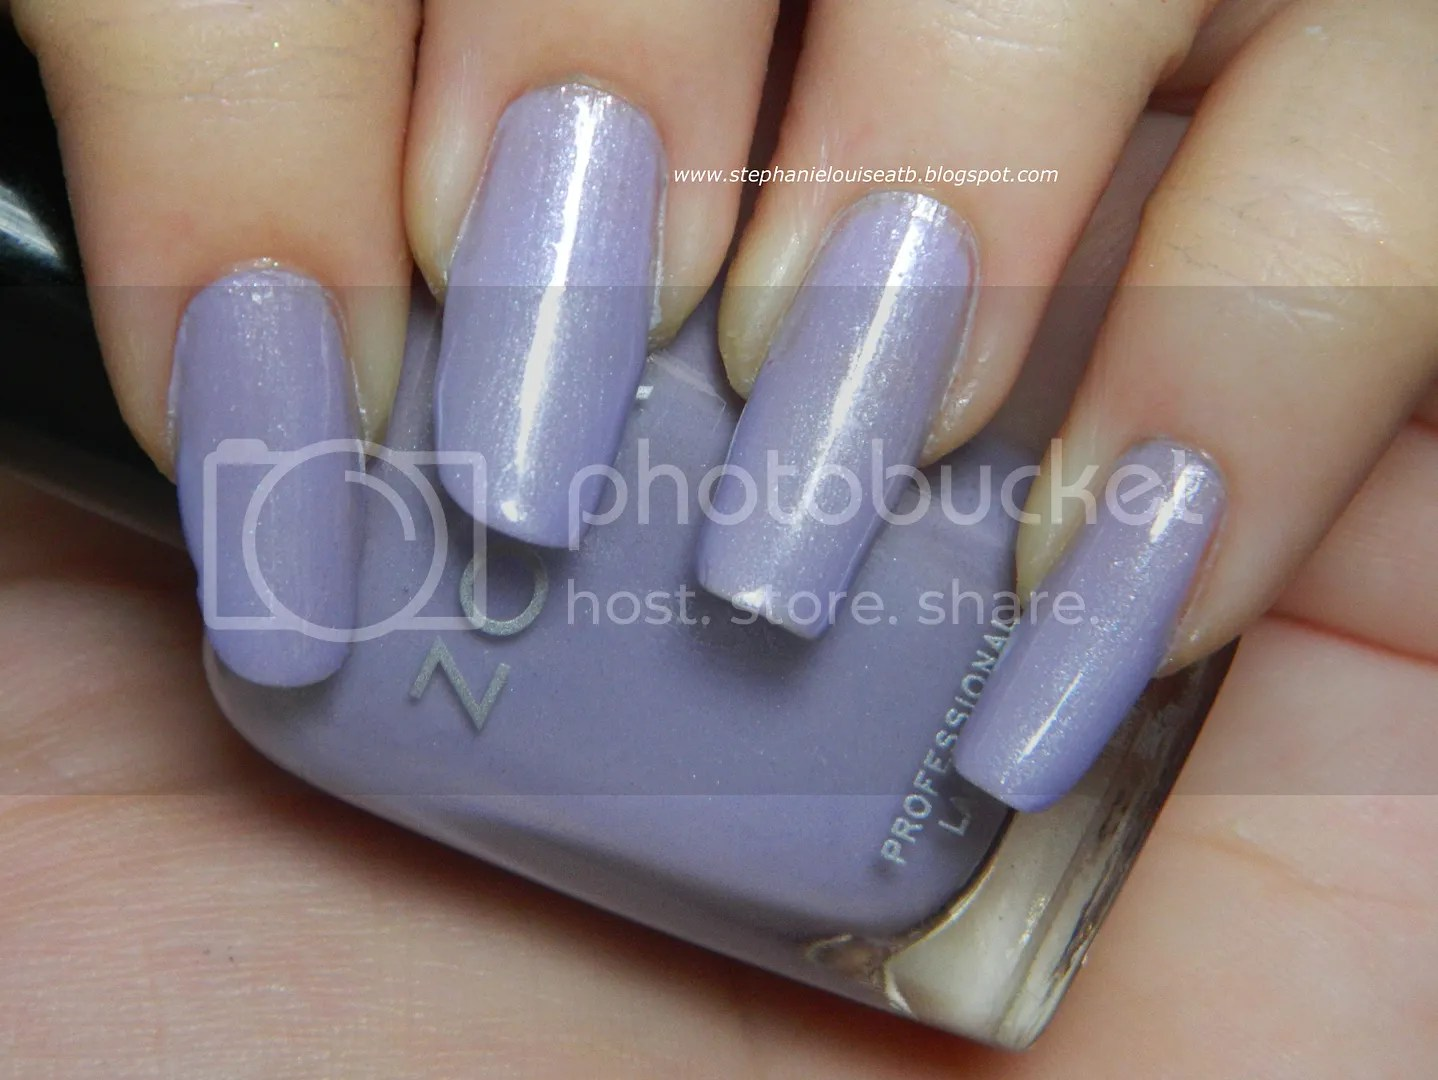 Zoya Lovely Spring 2013 Collection Nail Polish Swatches & Review!